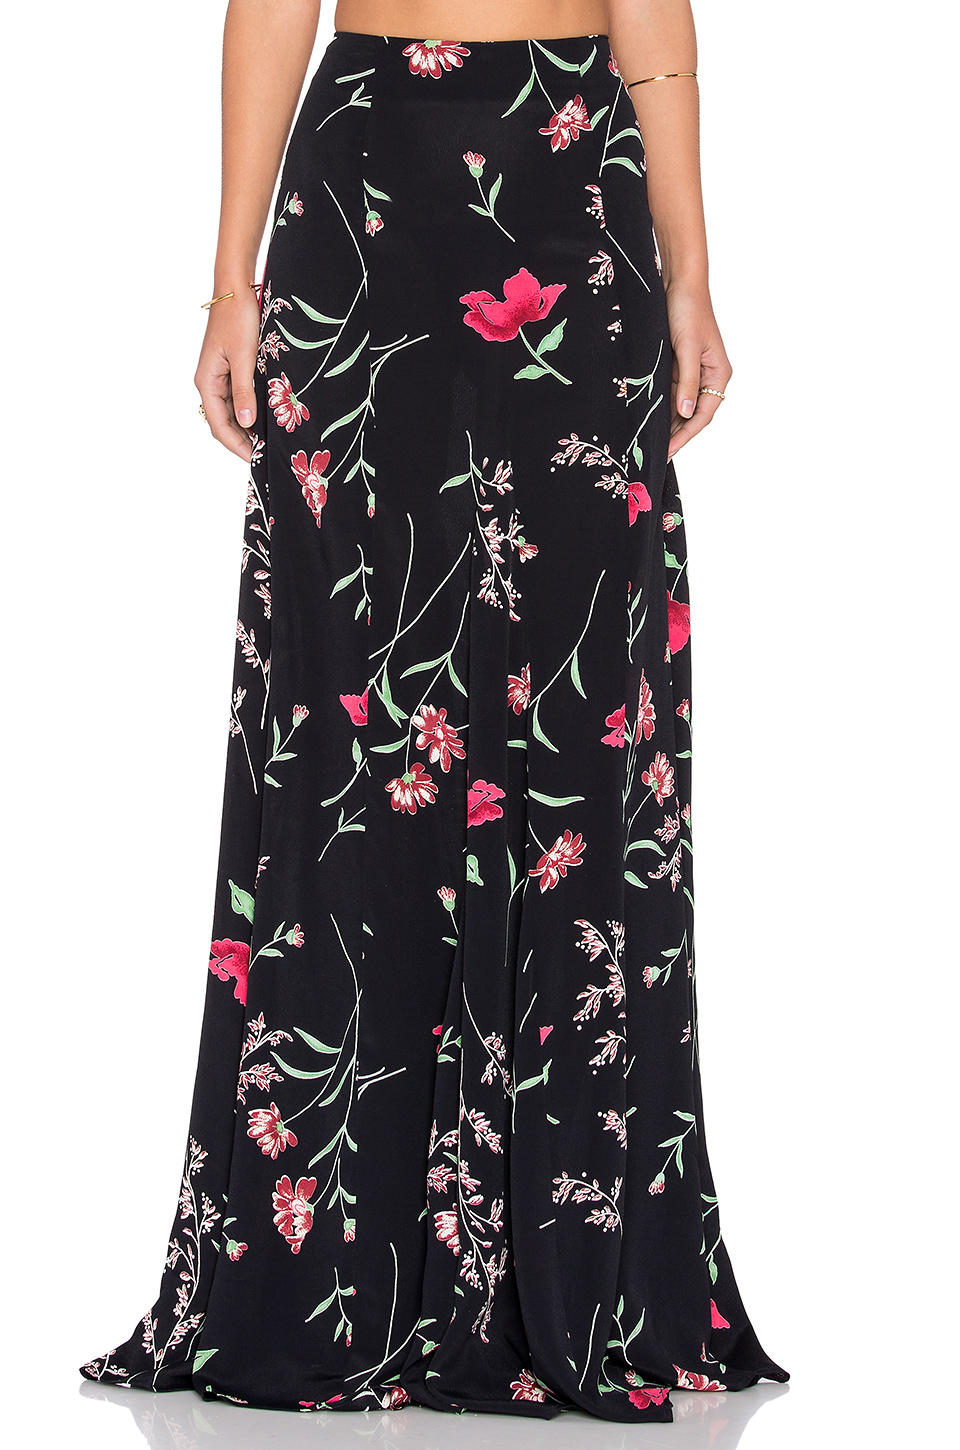 cdf3ad373306 Privacy Please Heyward Skirt in Helena from REVOLVE | Skirts